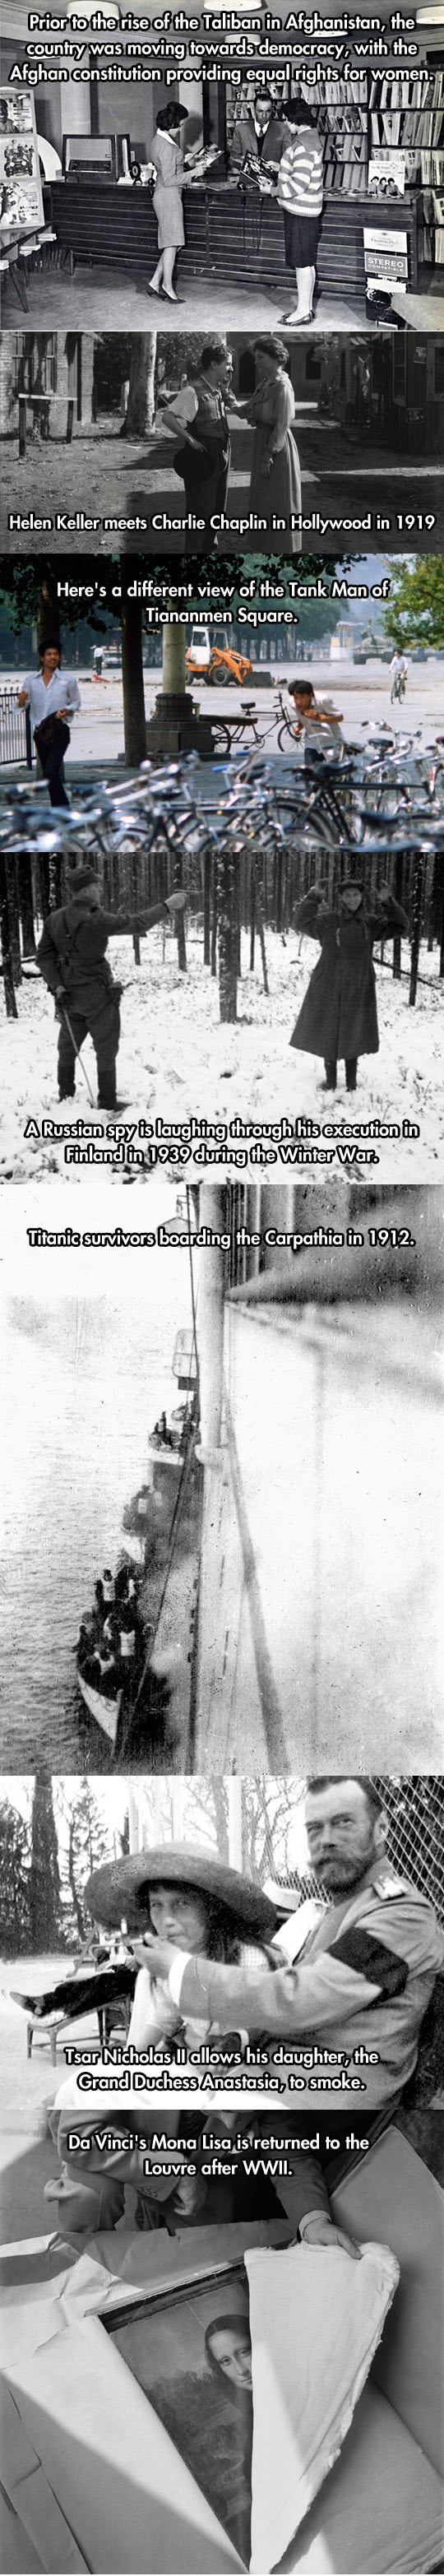 cool-rare-historical-pictures